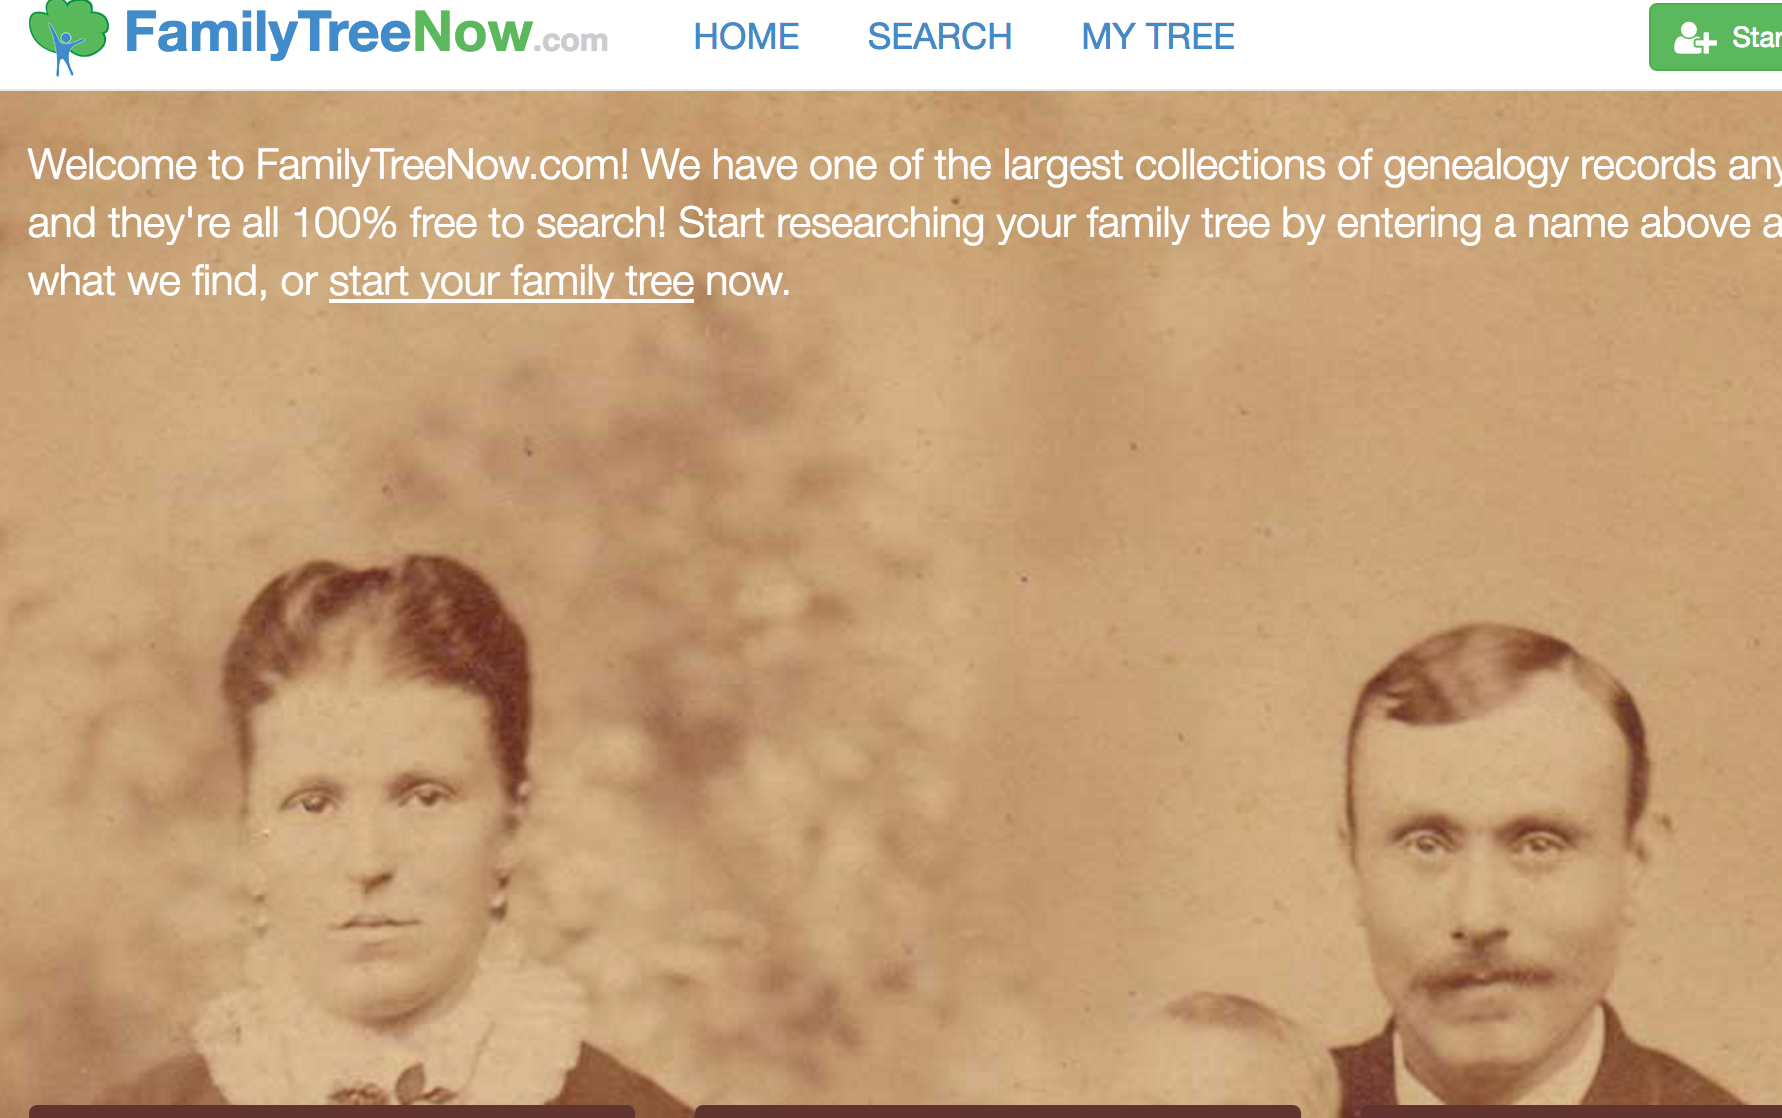 It's Creepy, But Not Illegal, For This Website To Provide All Your Public Info To Anyone